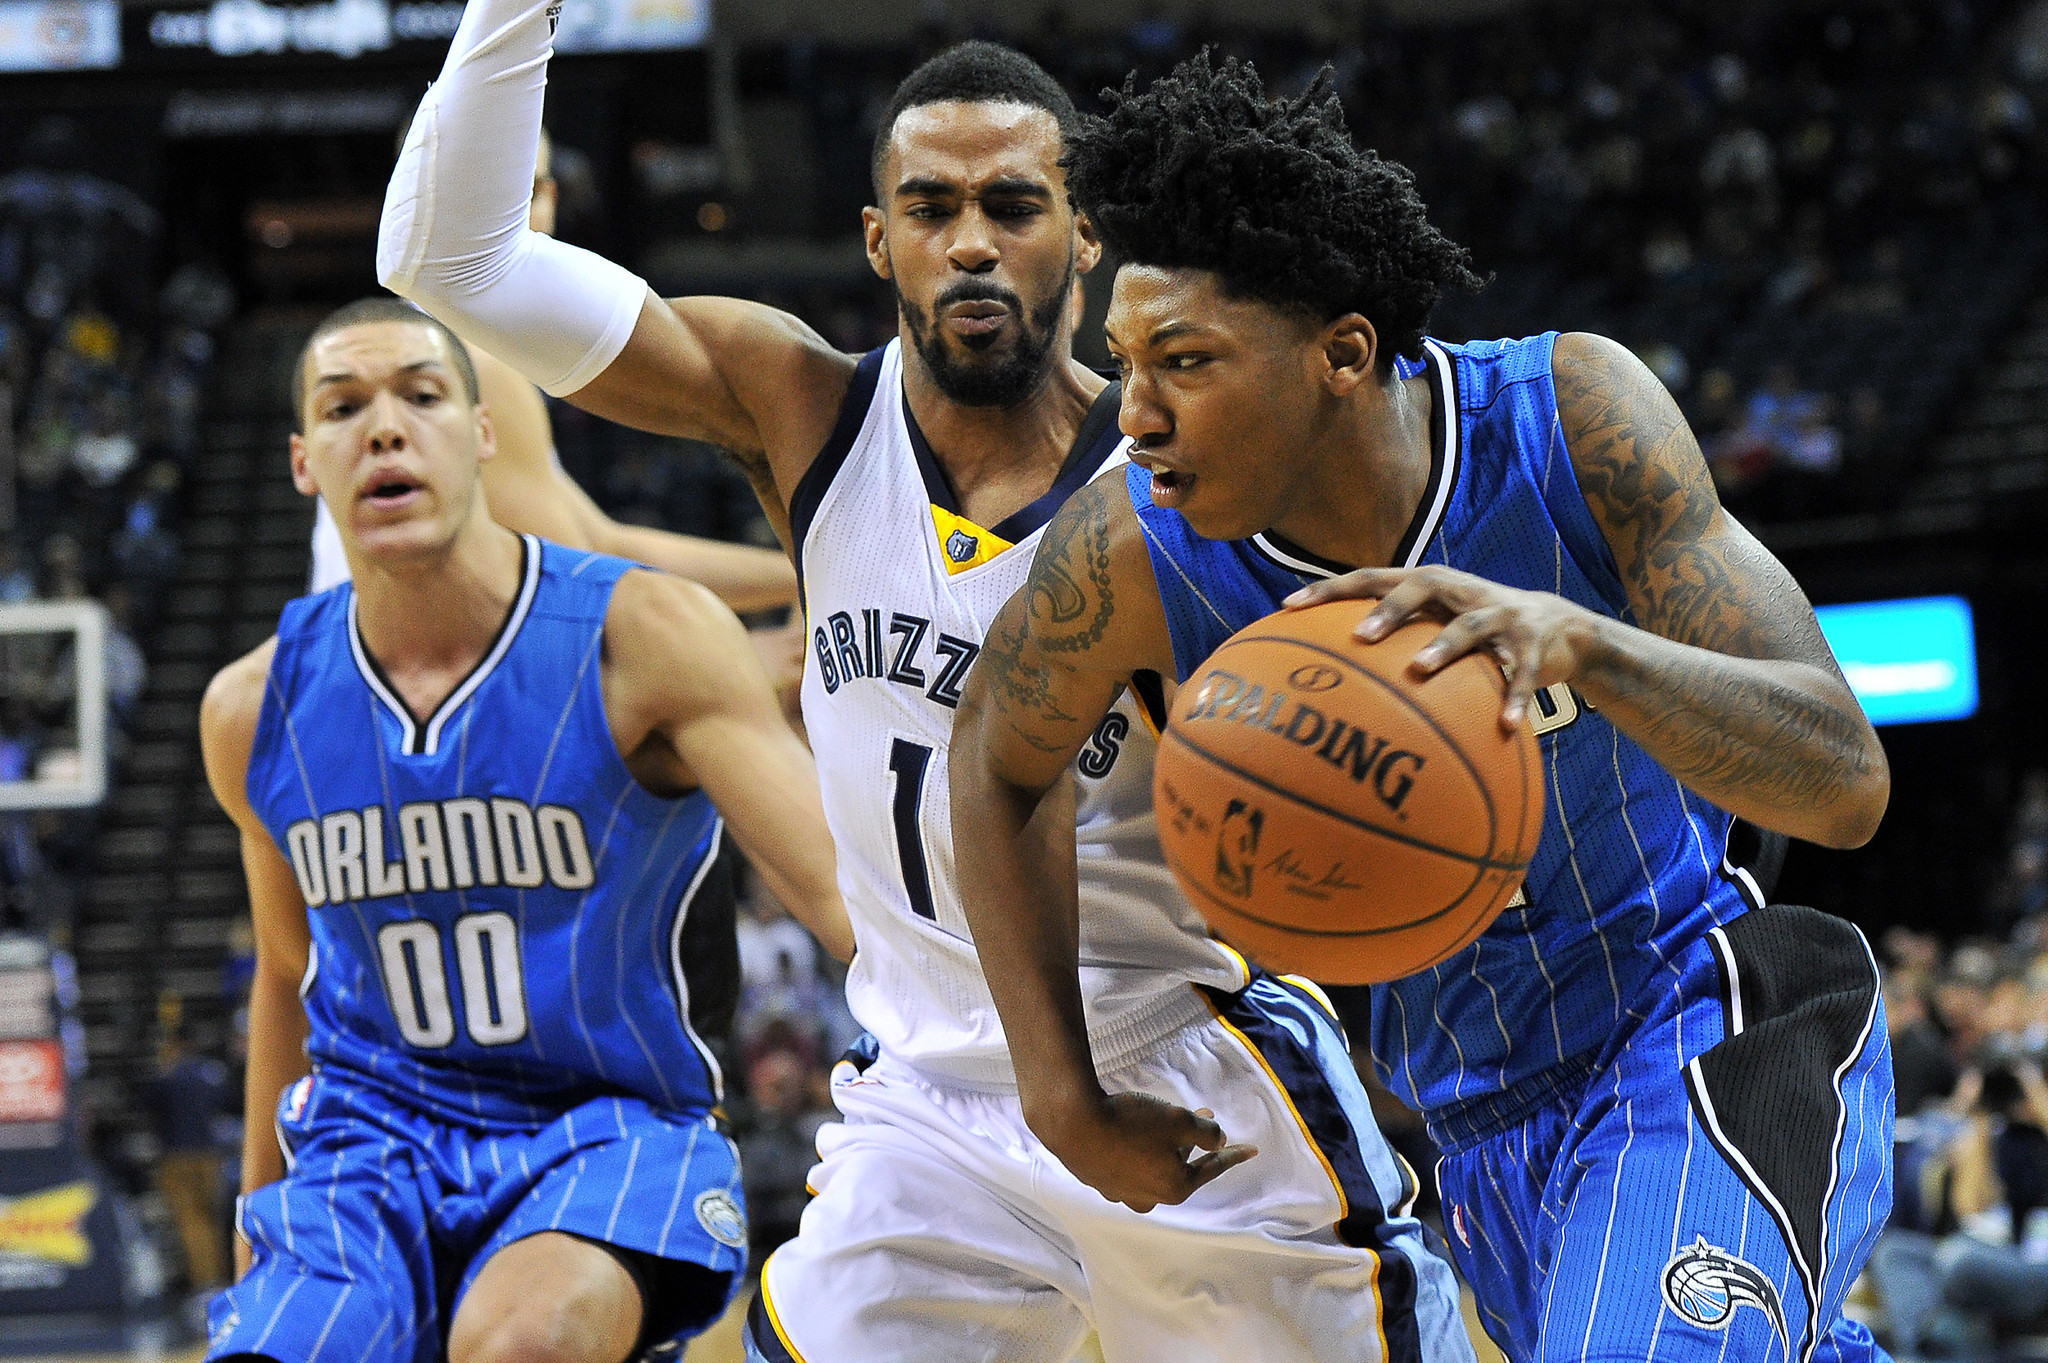 Os-orlando-magic-training-camp-preview-0926-20160925